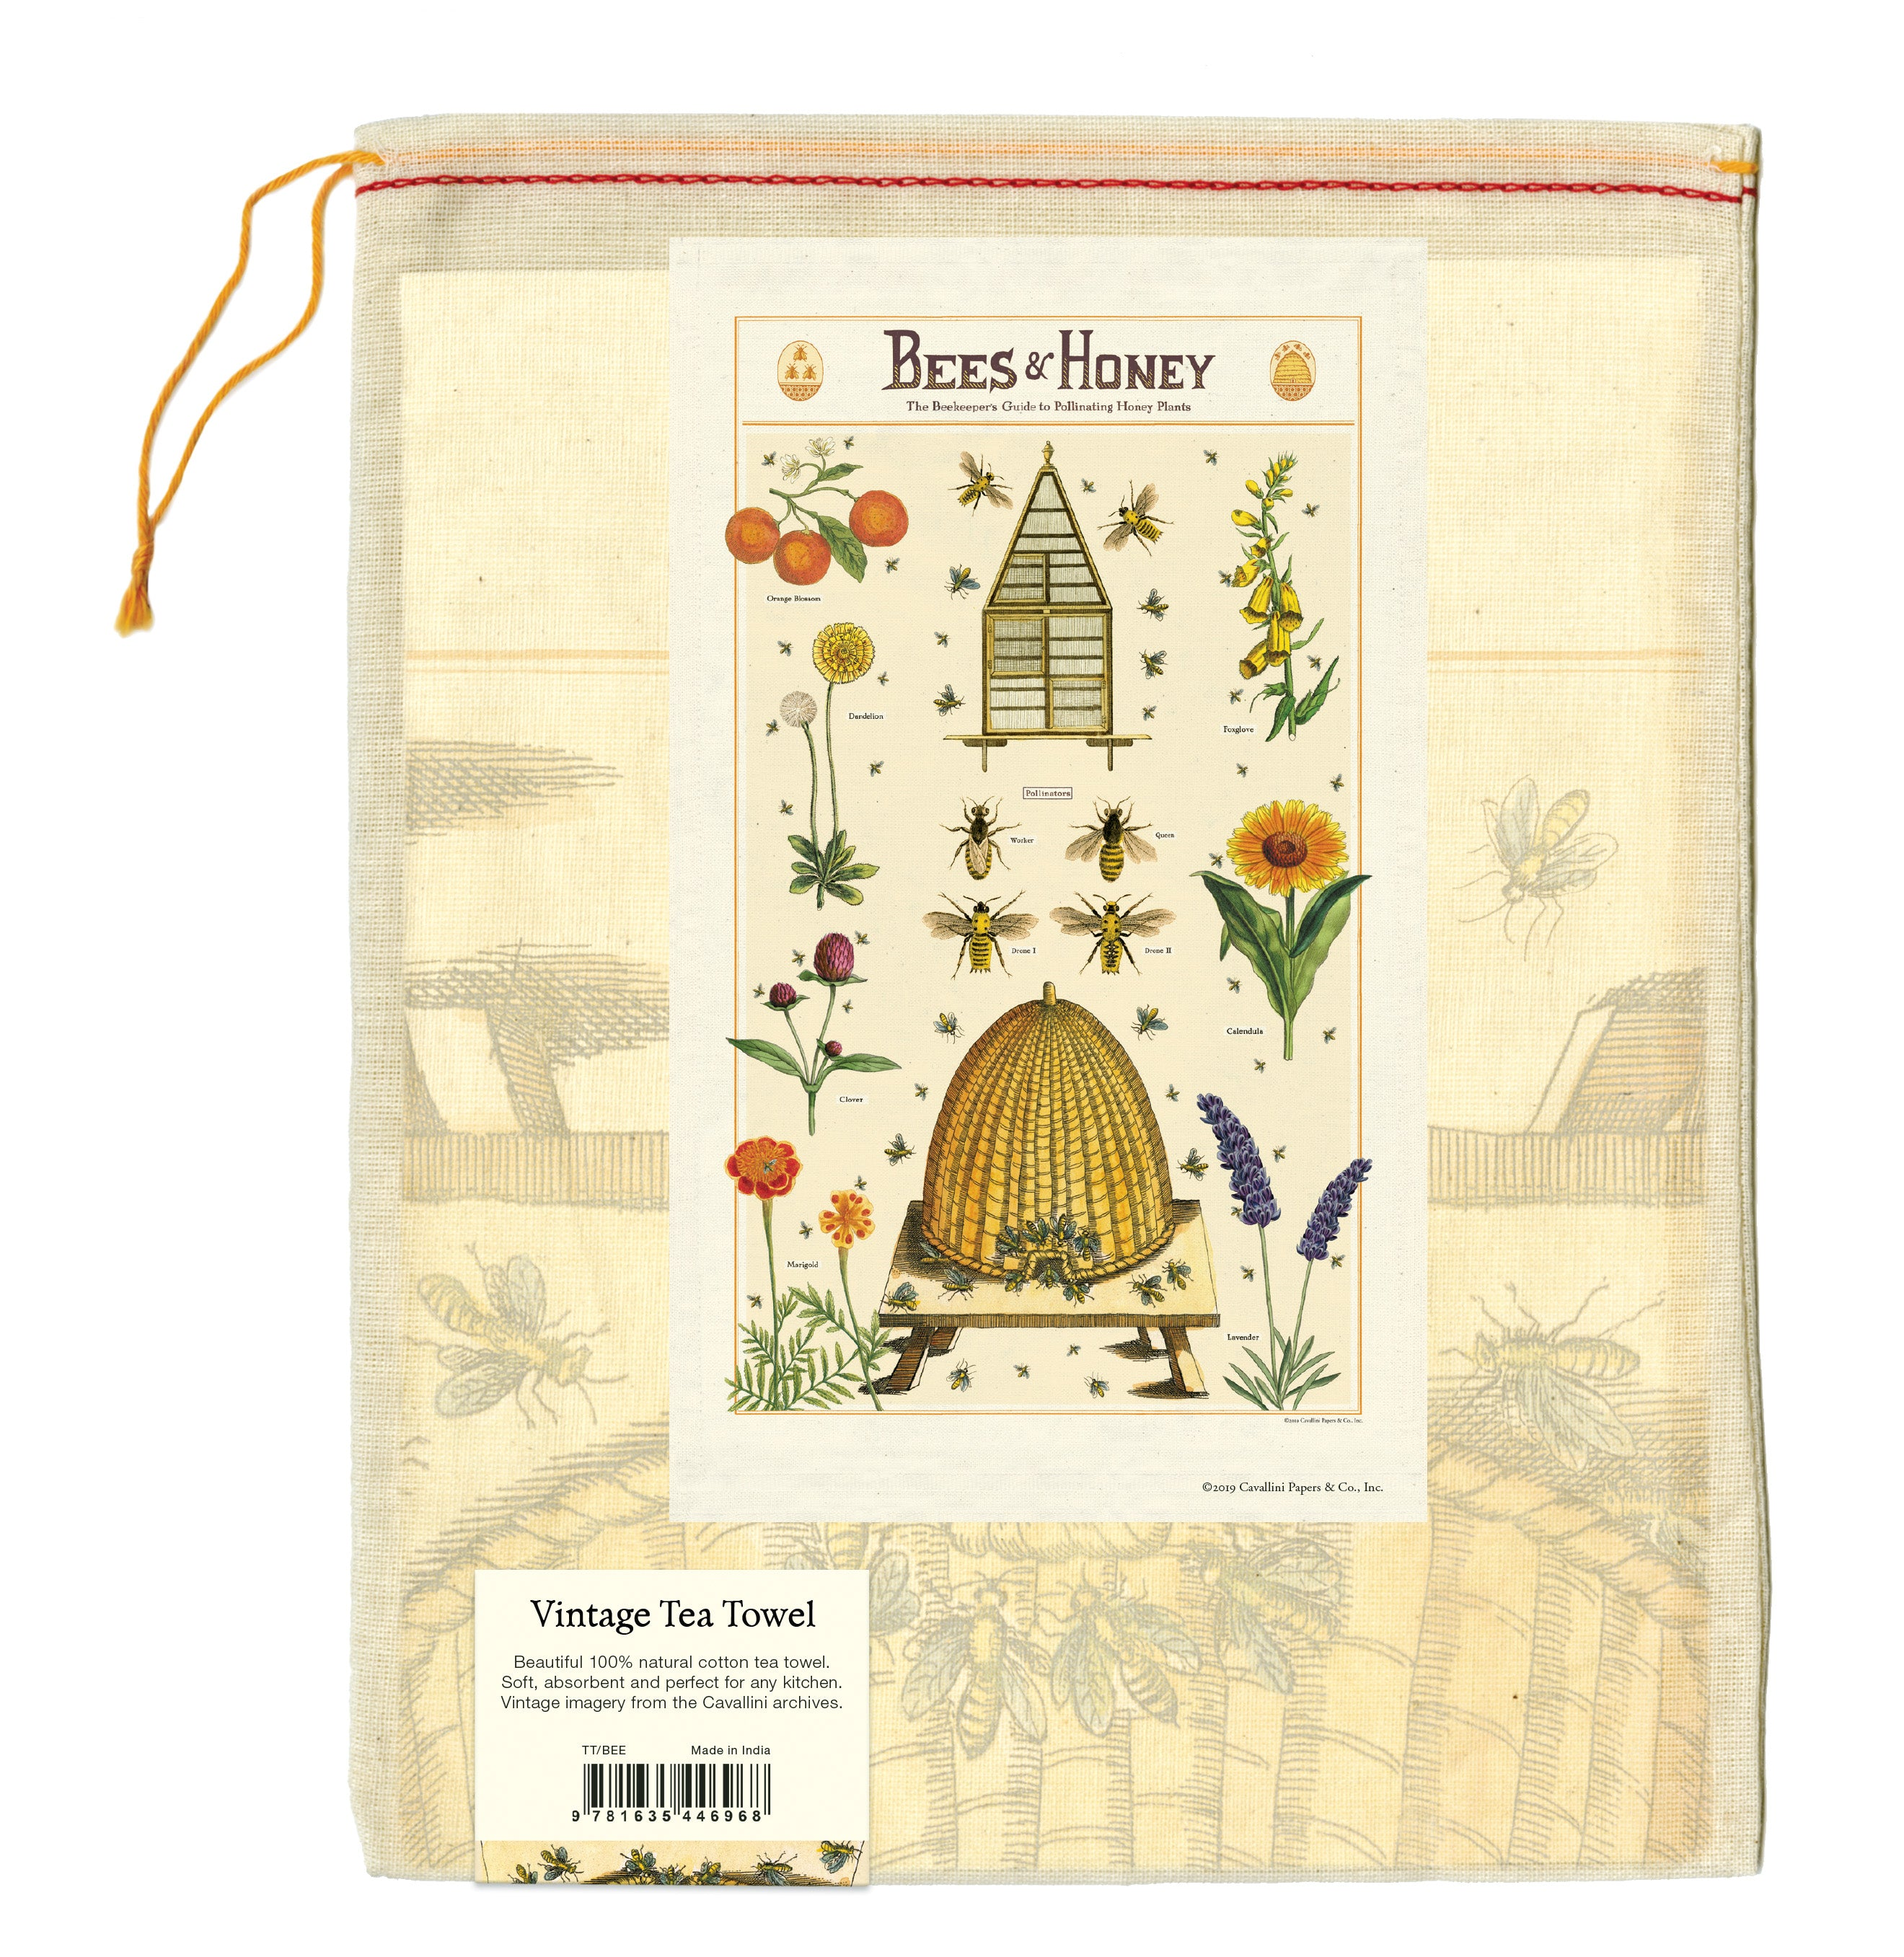 Cavallini Vintage Tea Towel - Bees & Honey